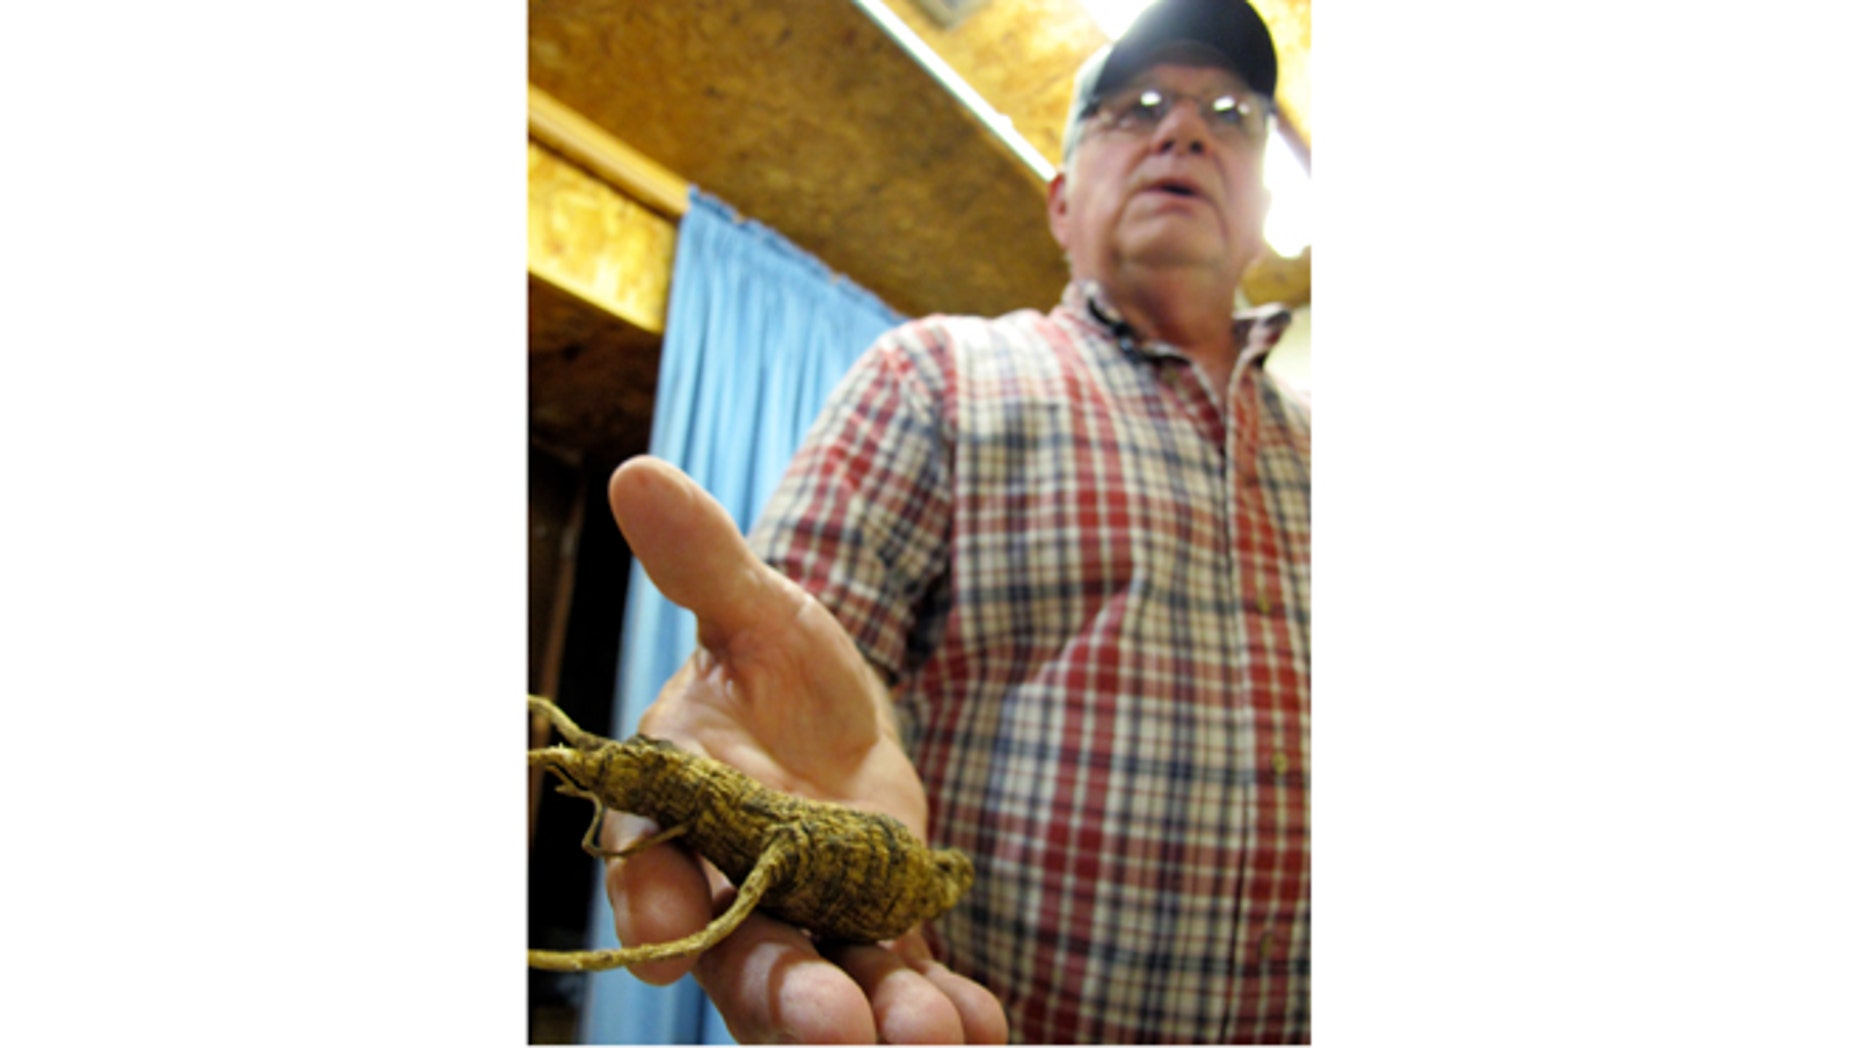 Sept. 18, 2012: Don Dobbs, owner of Buckhorn Ginseng, holds a wild ginseng root on in Richland Center, Wis.